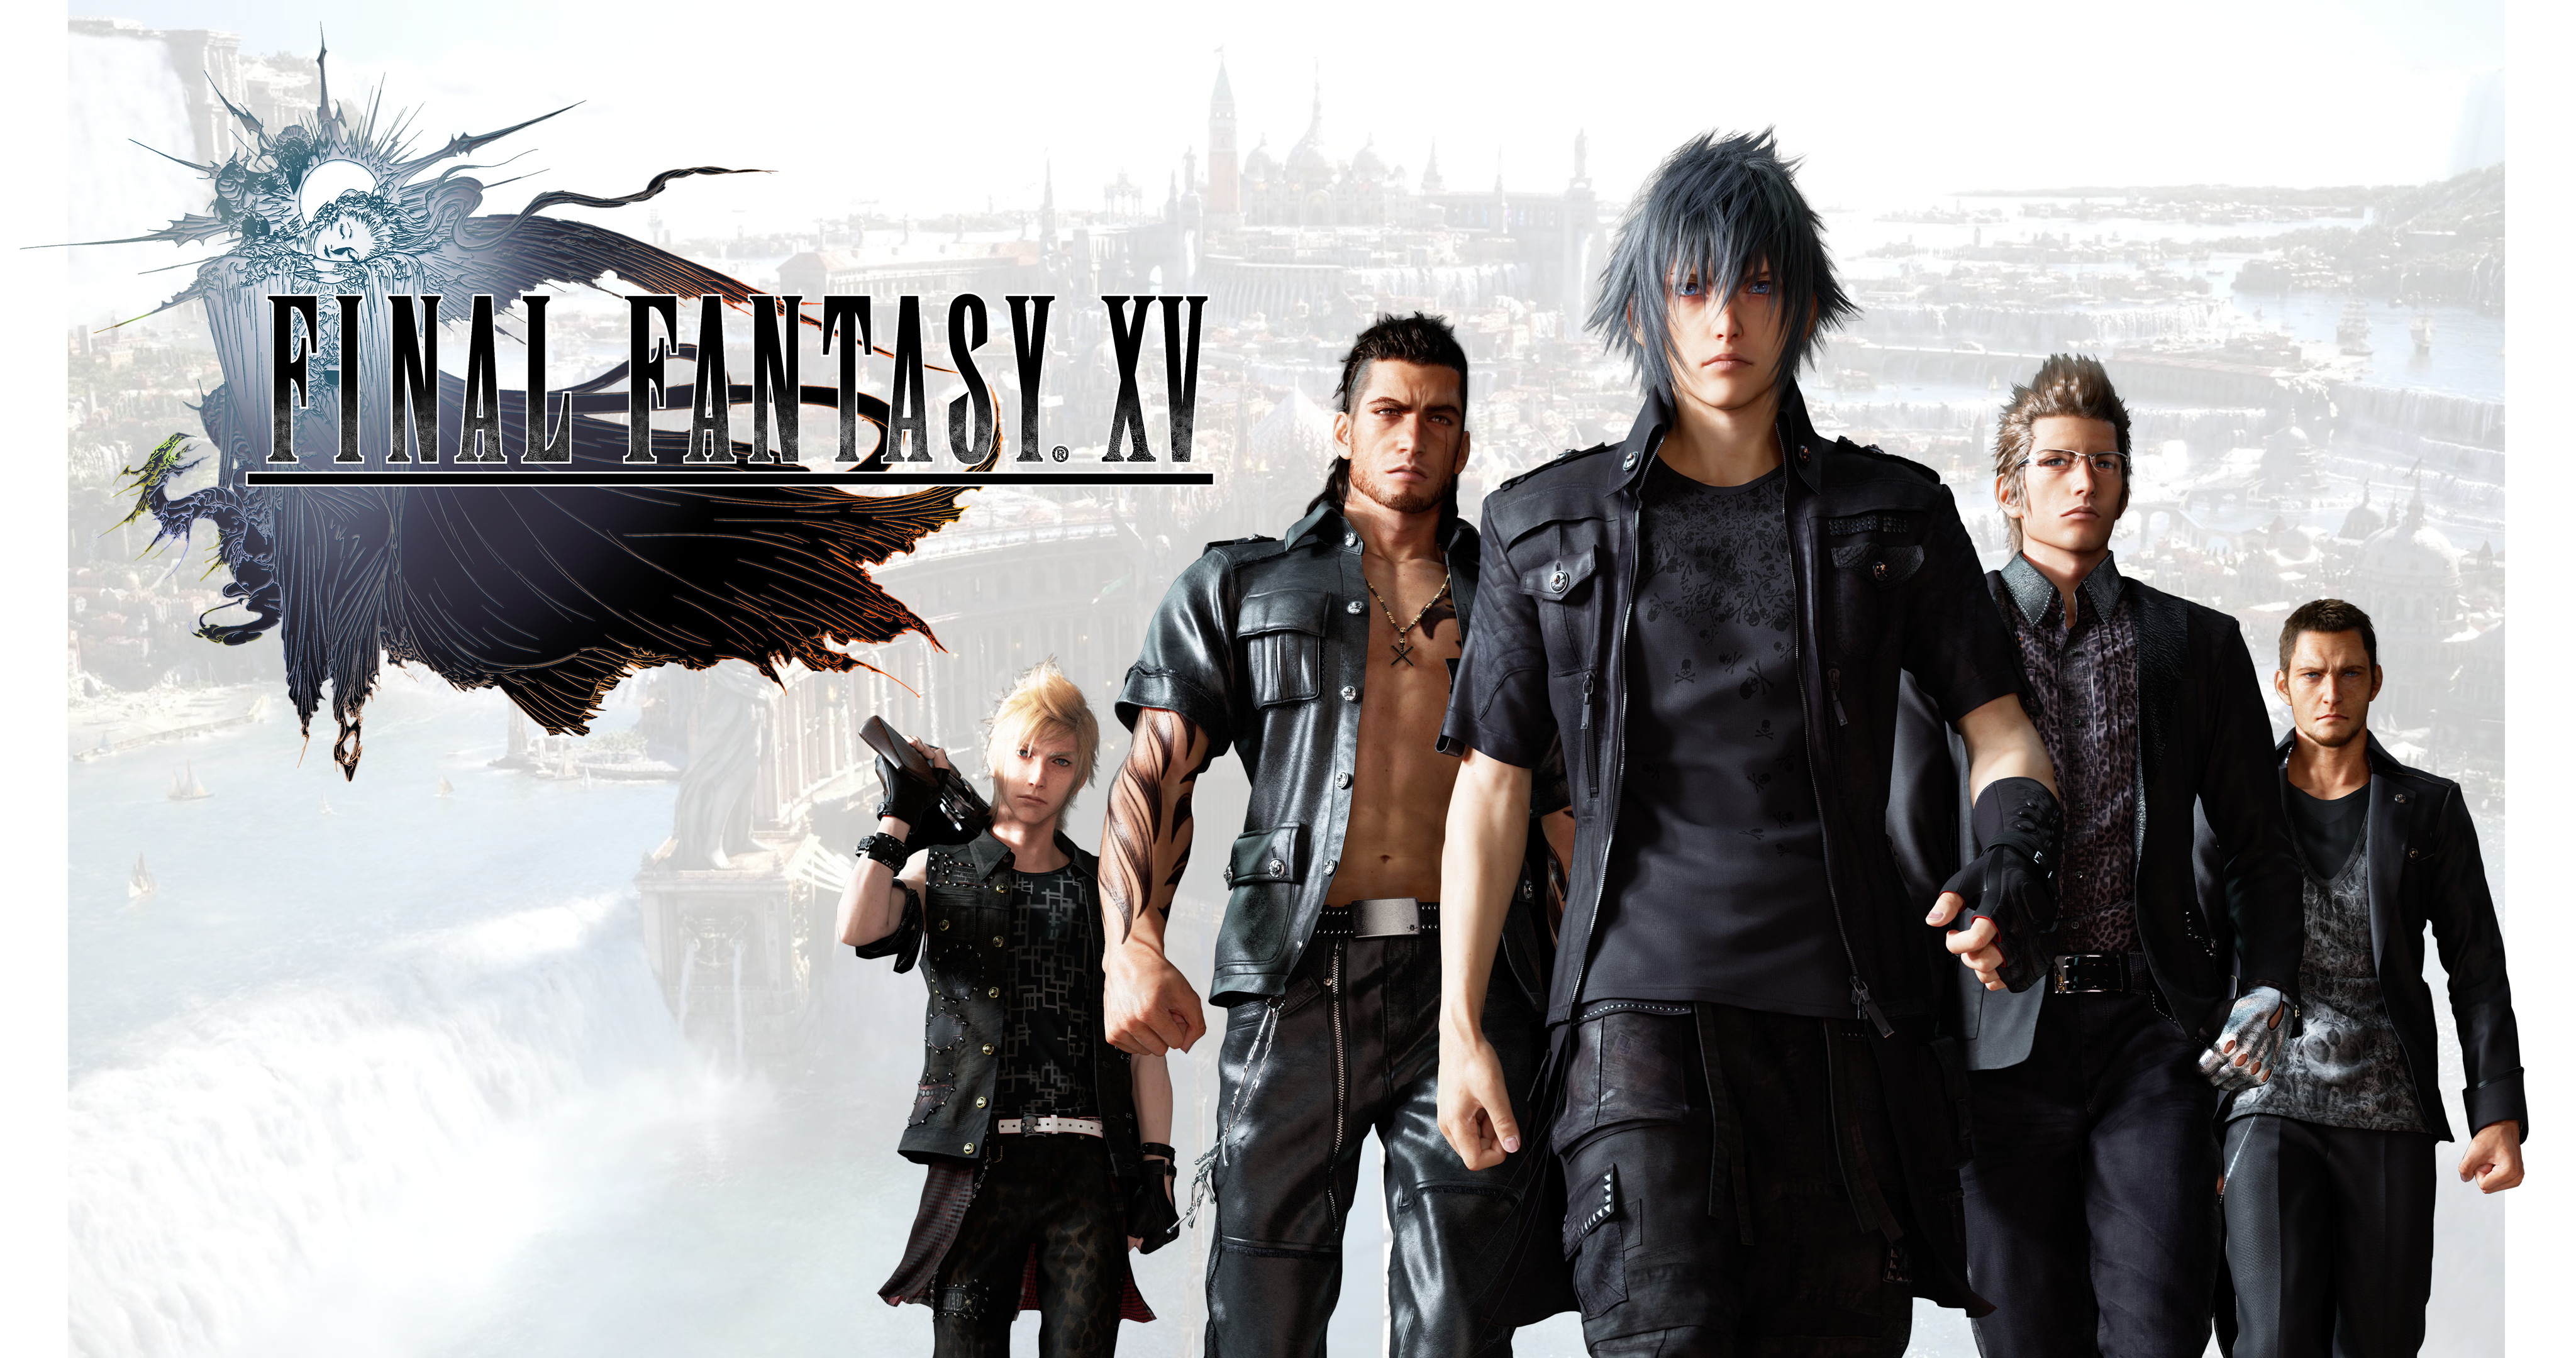 Final Fantasy XV Wallpaper 4K With New Prompto By REALzeles